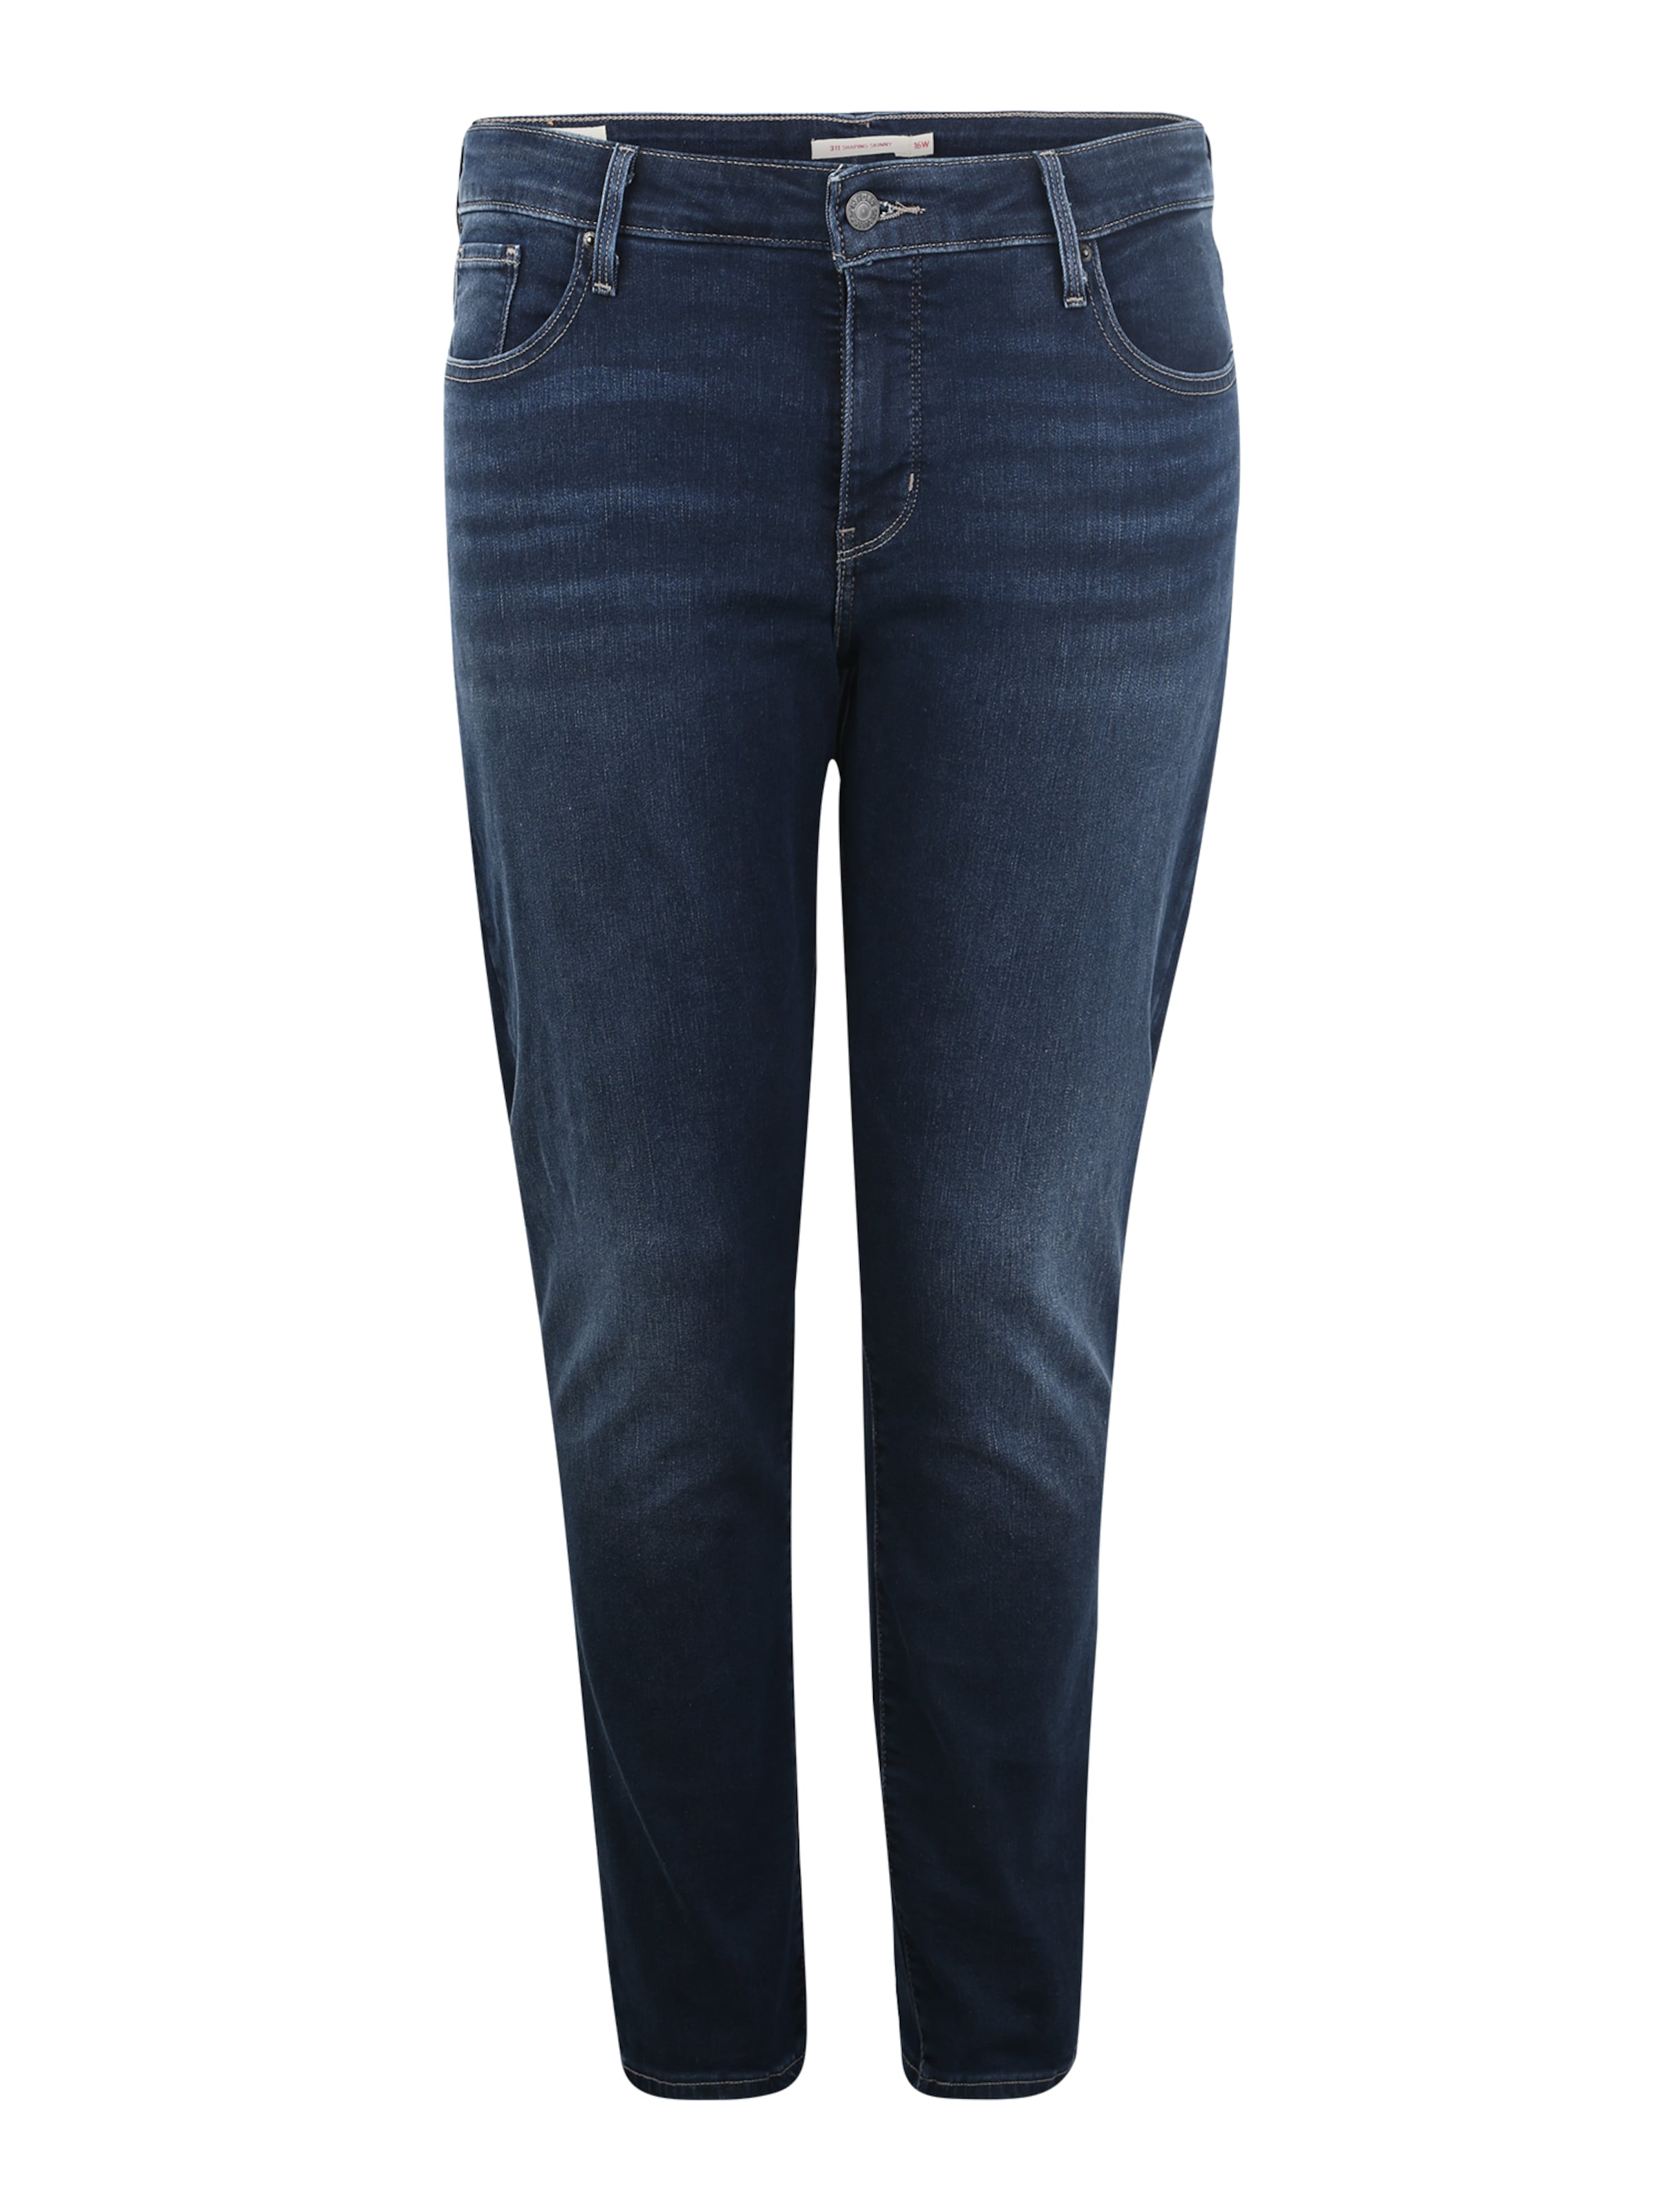 Pl En Levi's® Jean Skinny' Plus Denim Shaping Noir '311 RS5Lq34Ajc